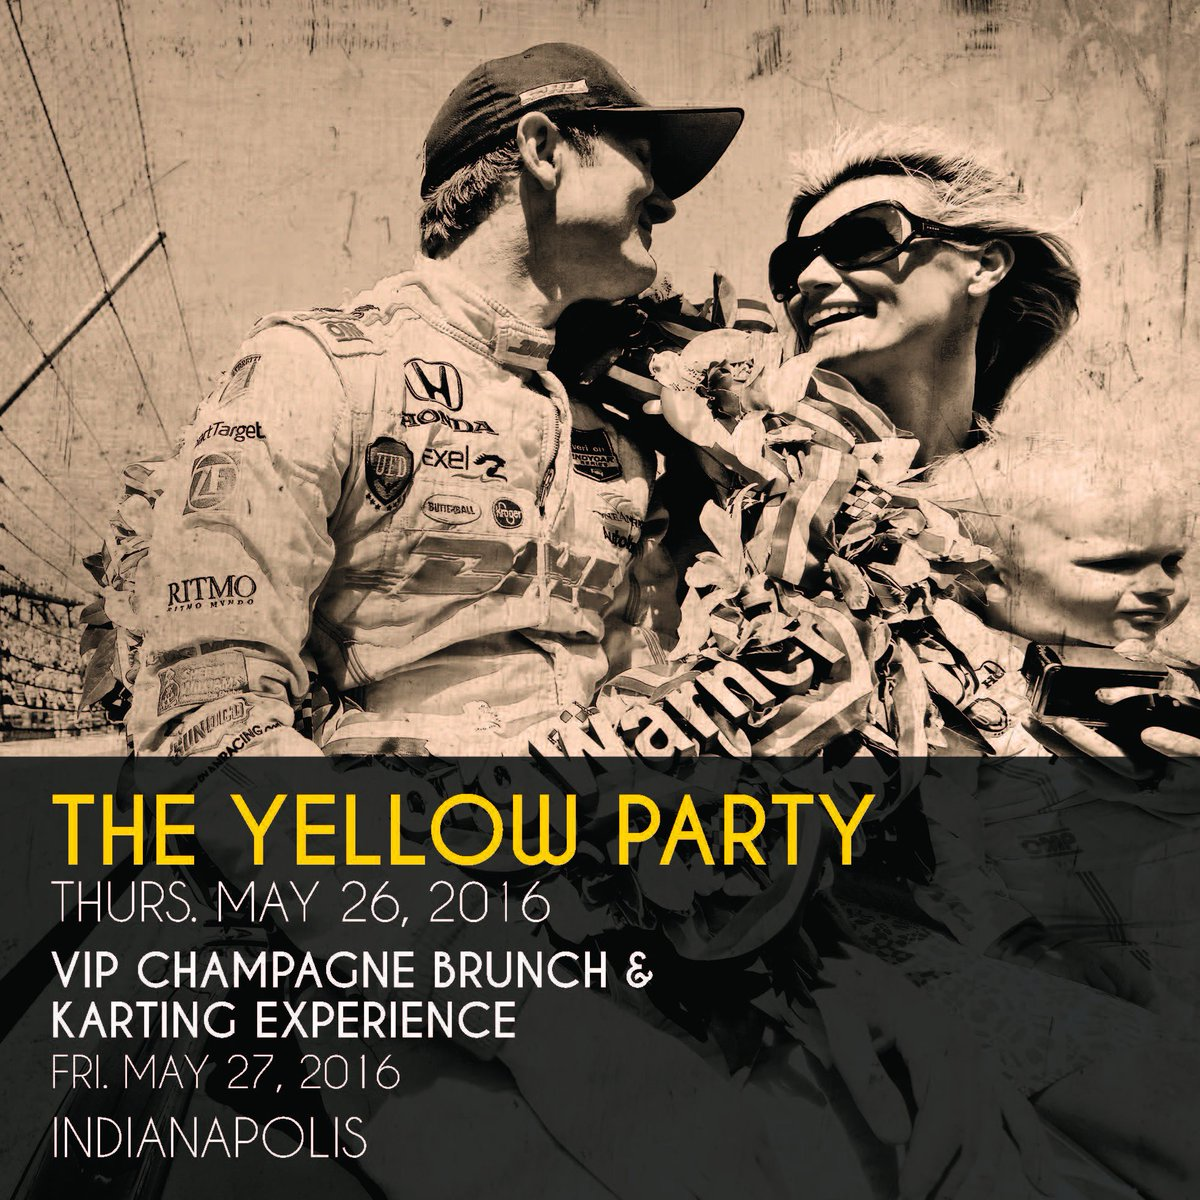 Join @BeccyGordon & @RyanHunterReay  at the @TheYellowParty! Purchase your tickets today! https://t.co/0W1Fgjjw89 https://t.co/uJlS0HSTo2